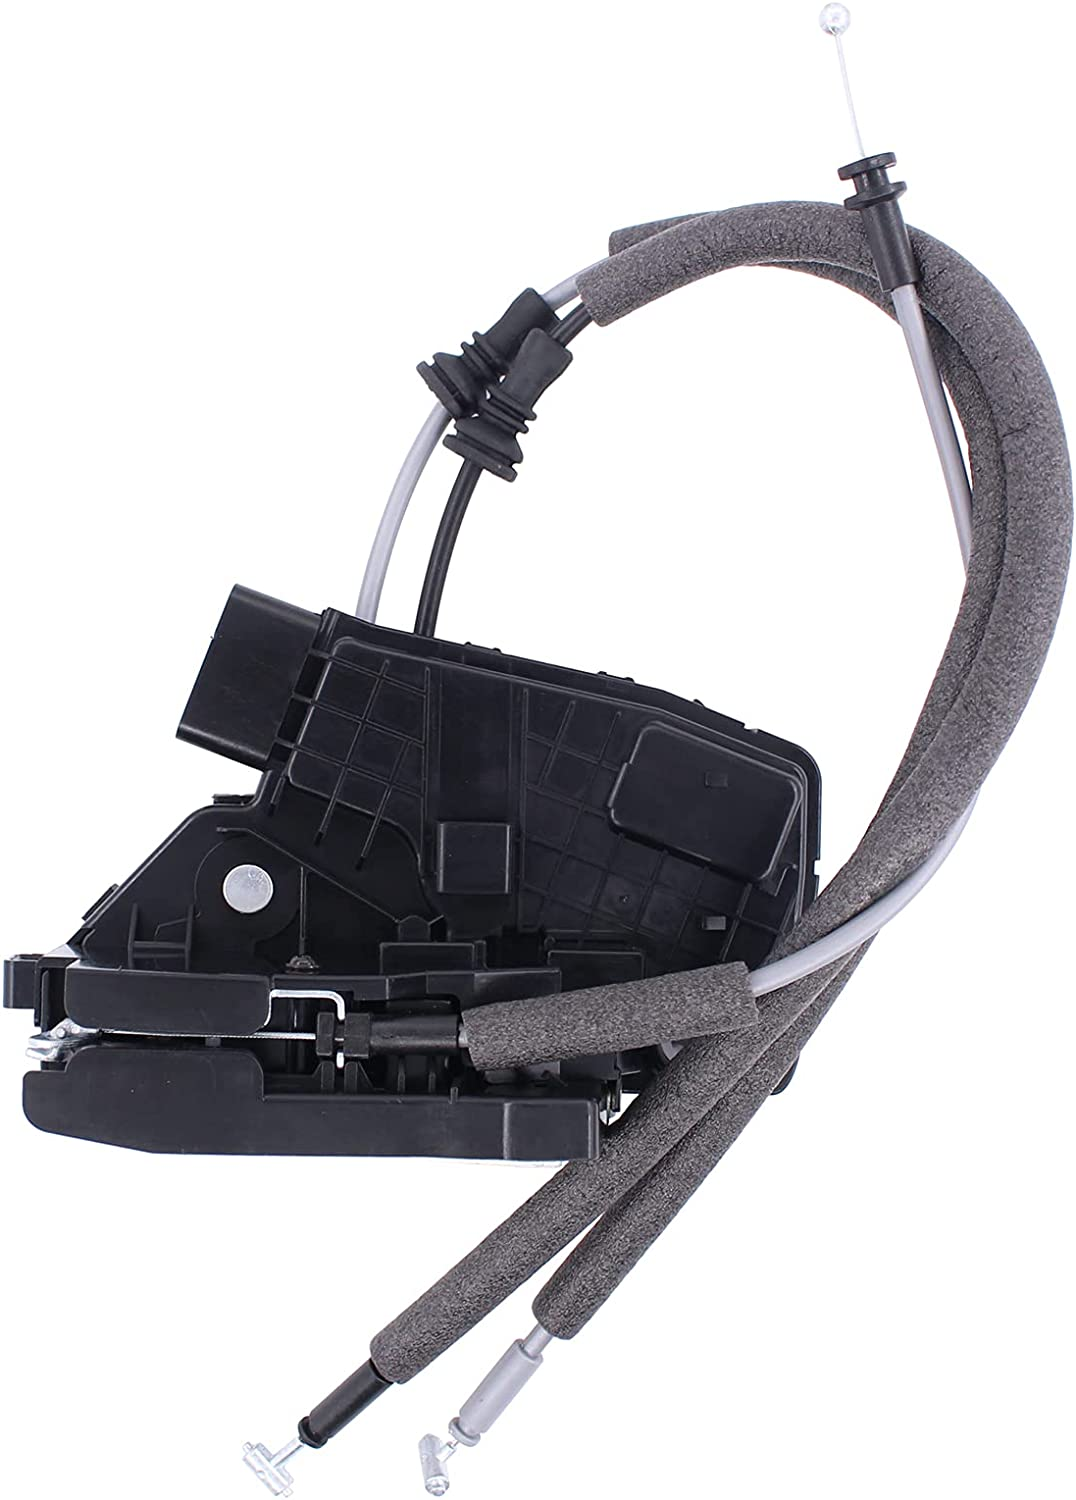 ApplianPar Front Drive Side New product type Door Motor Max 46% OFF Lock for Actuator Hyundai